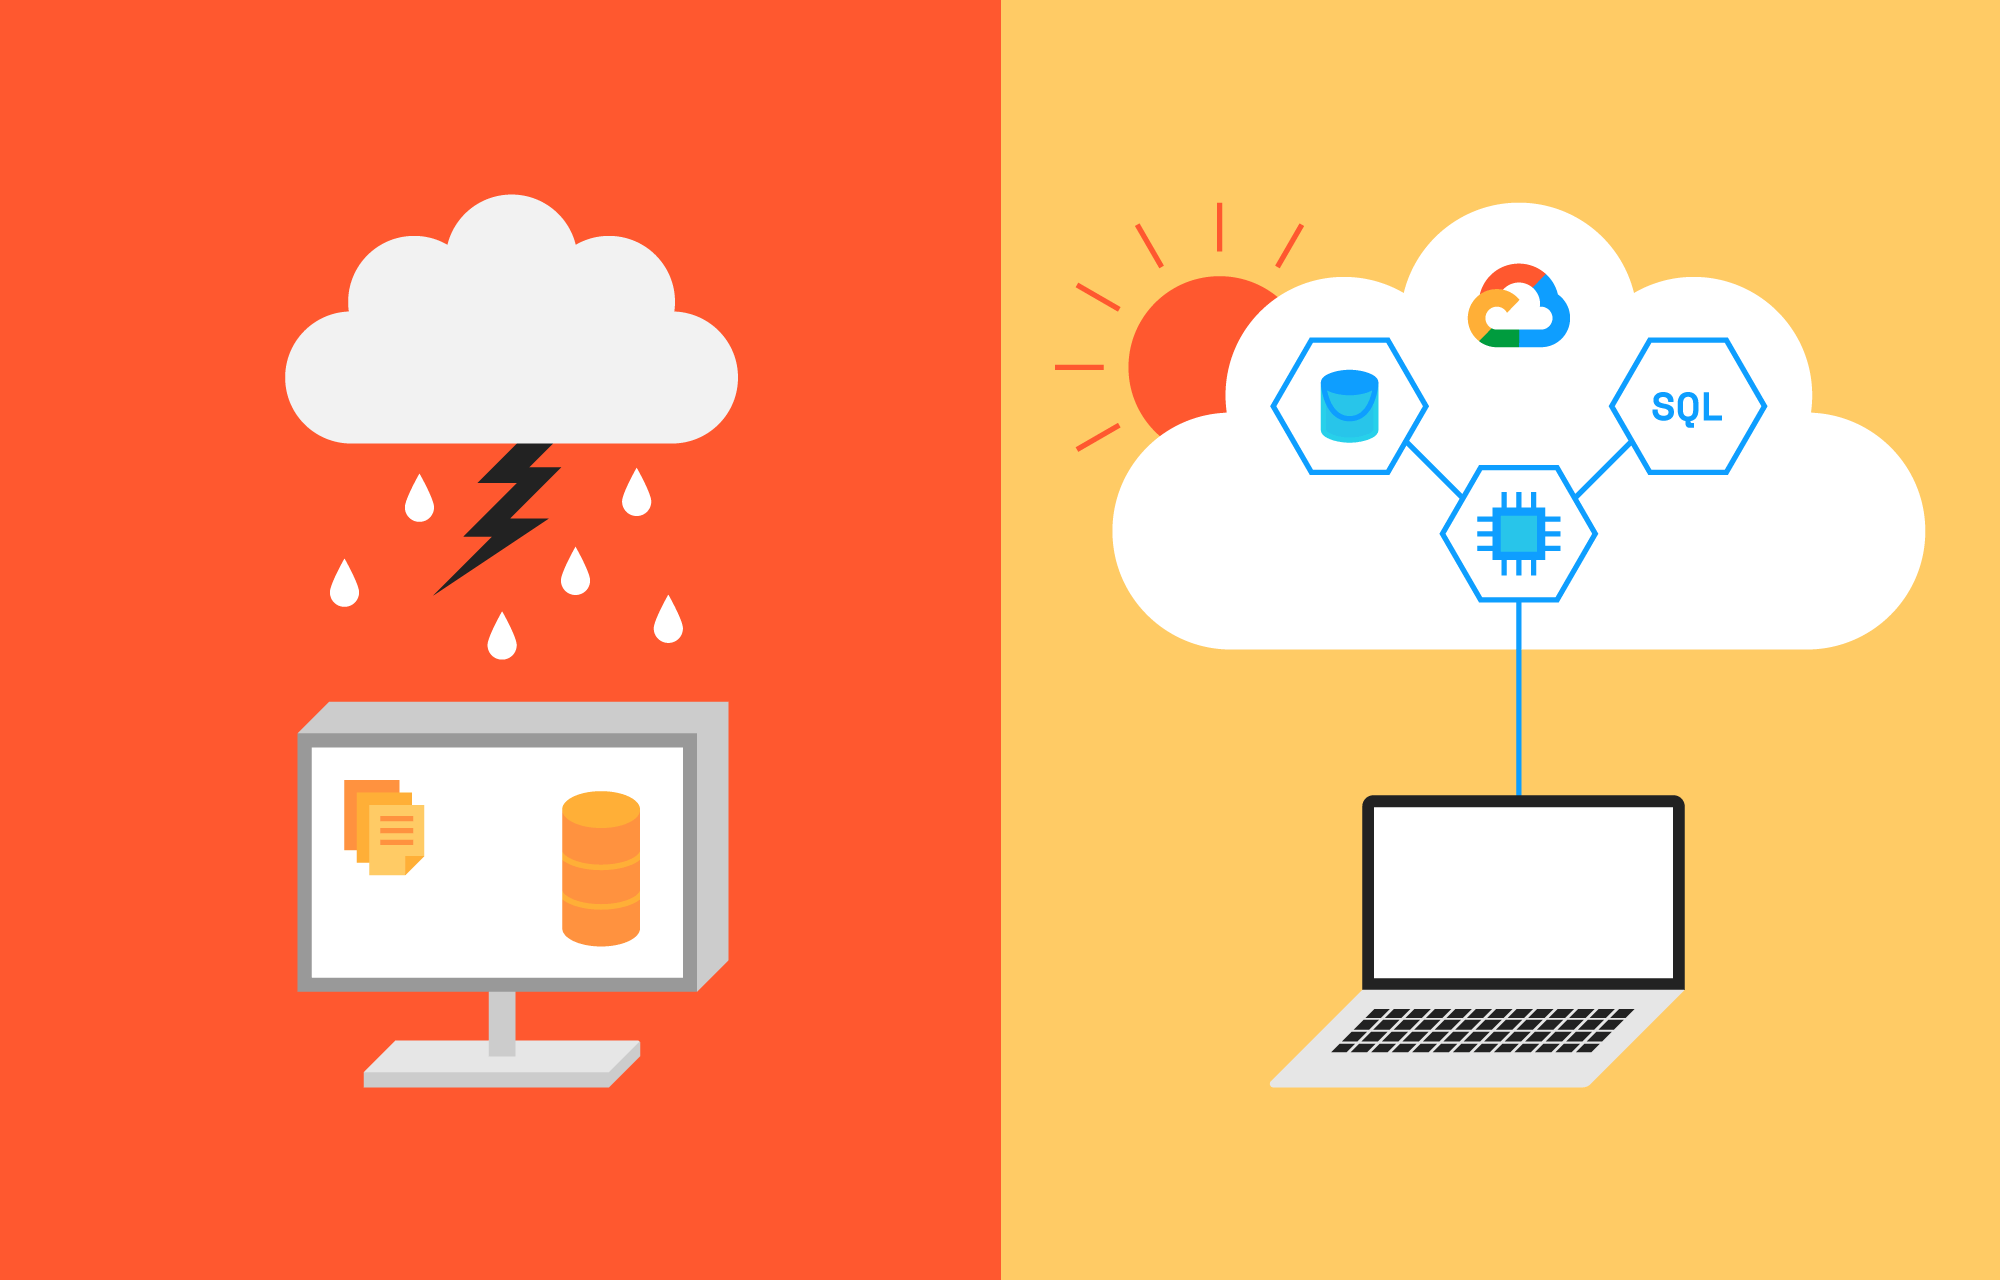 What does having a database in the cloud mean?